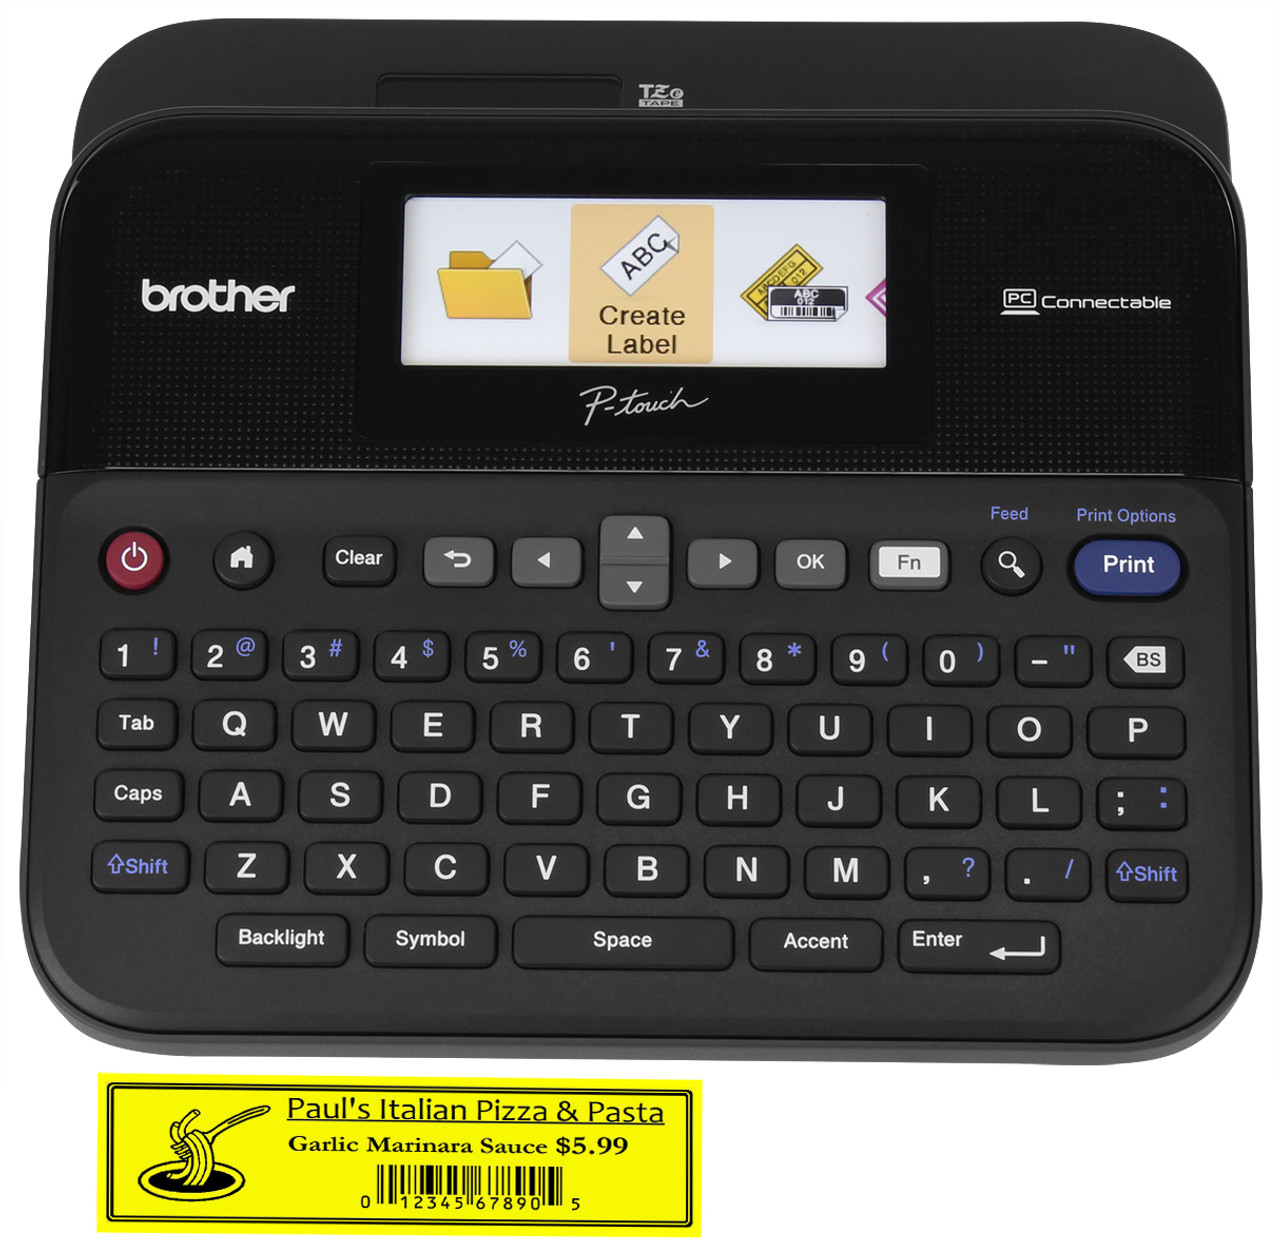 Brother PT-D600 PC-Connectable P-touch Label Maker with Color Display